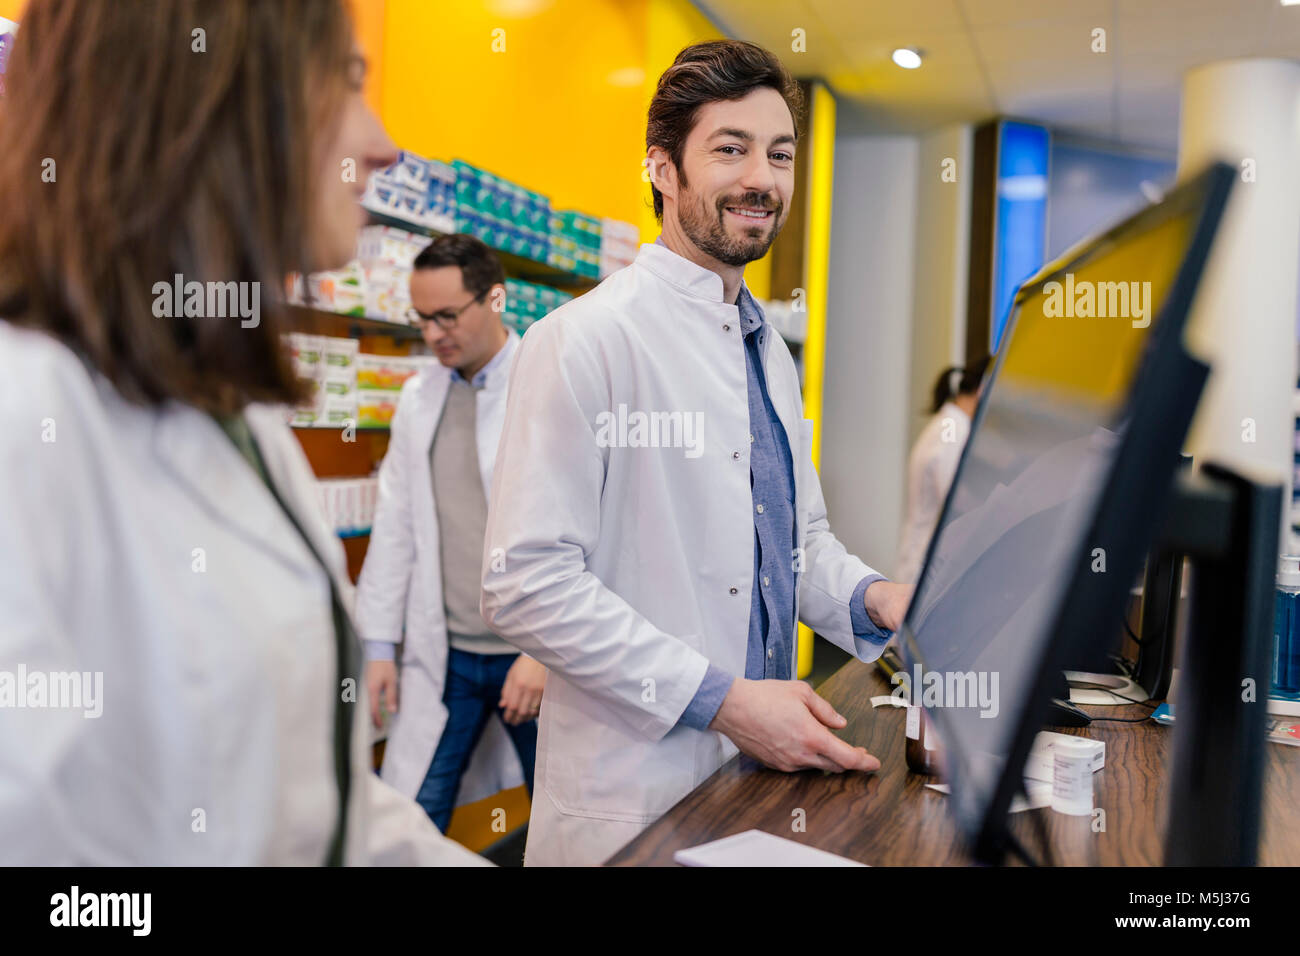 Portrait of smiling pharmacist with colleagues at counter in pharmacy - Stock Image